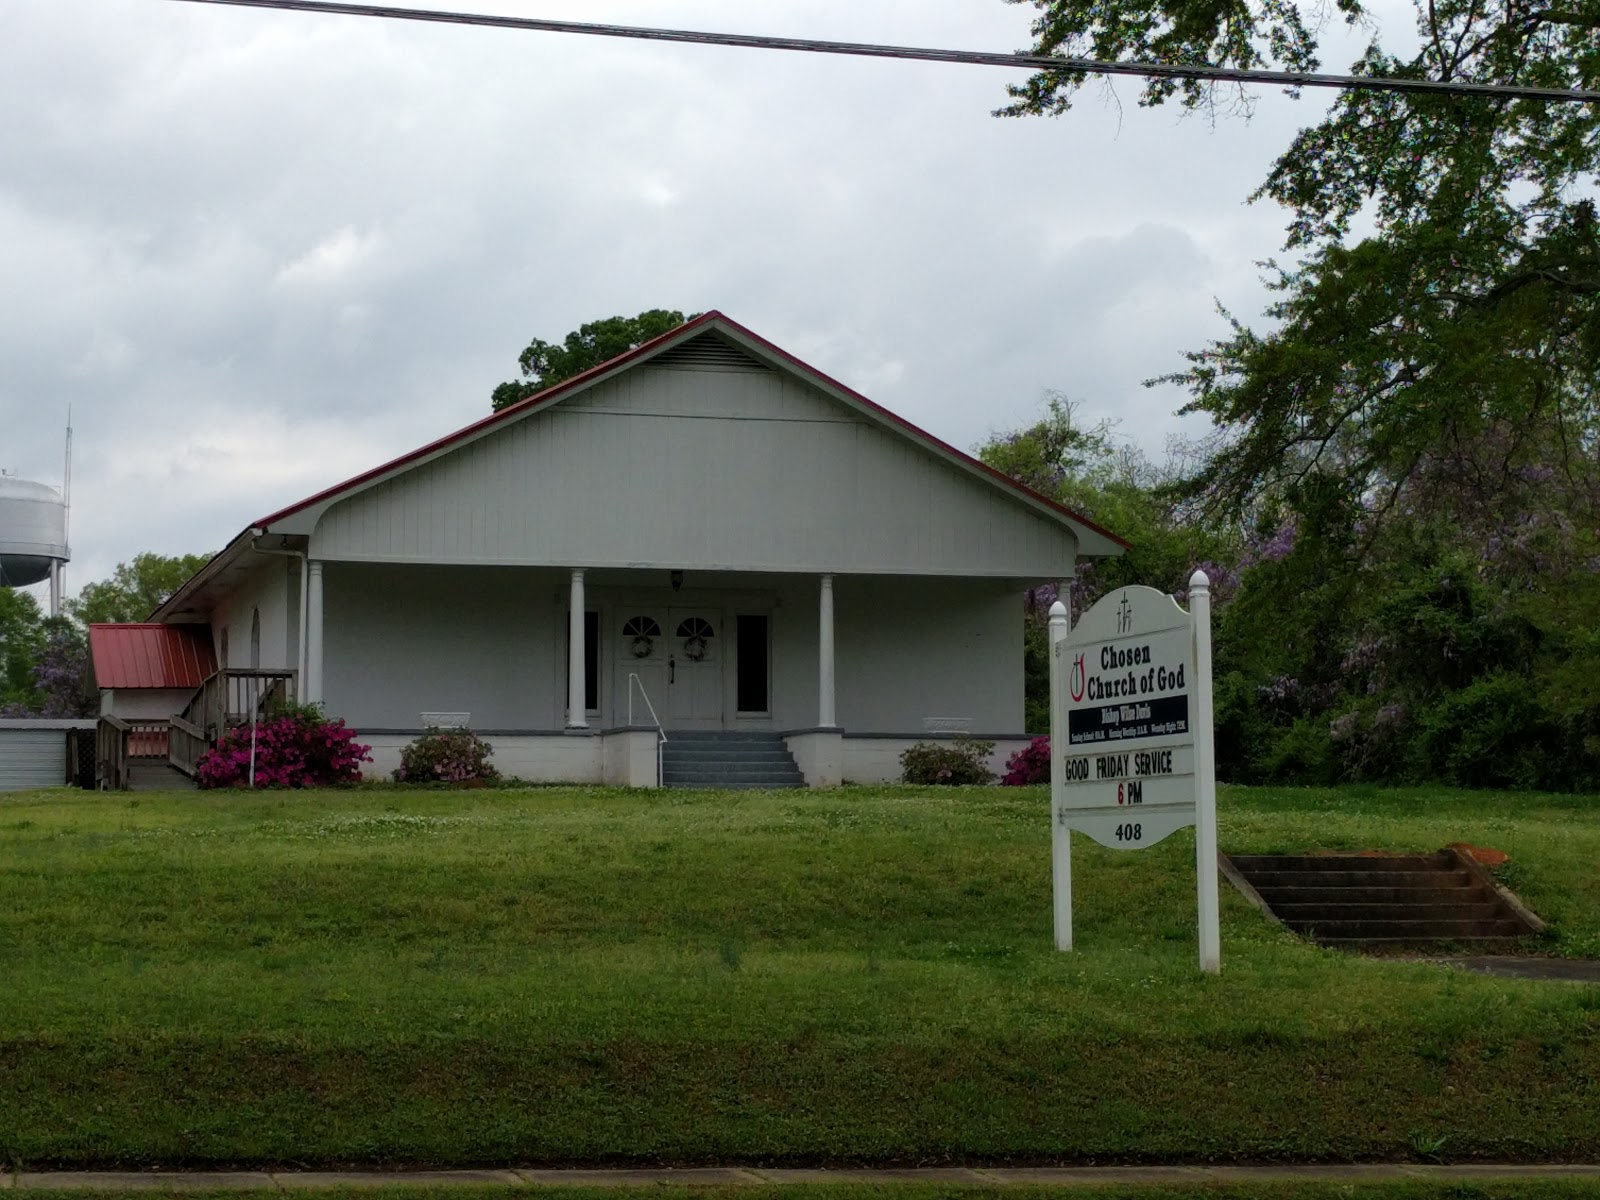 church and states churches in chosen church of god across the street from all angels